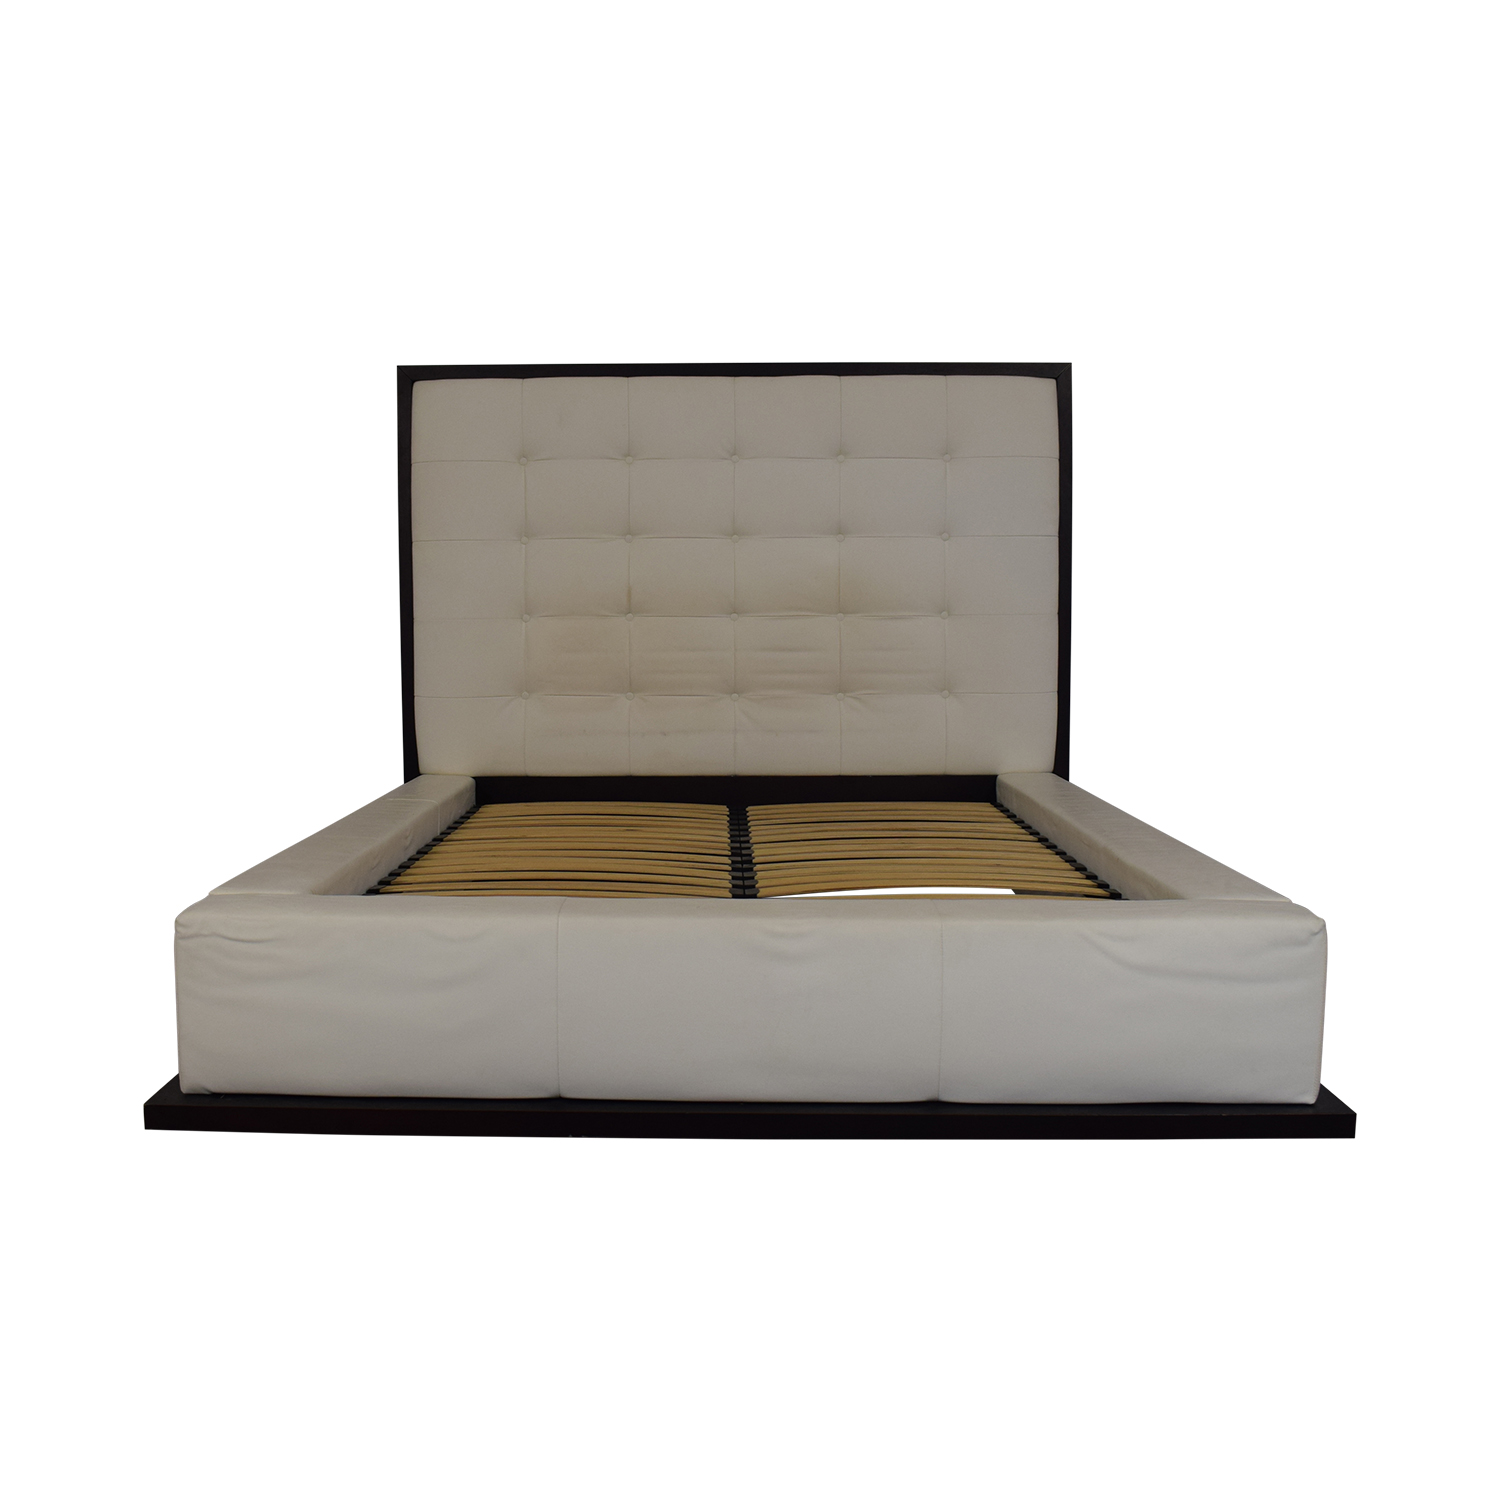 Modloft Modloft Ludlow White Tufted Upholstered Queen Bed Frame dimensions